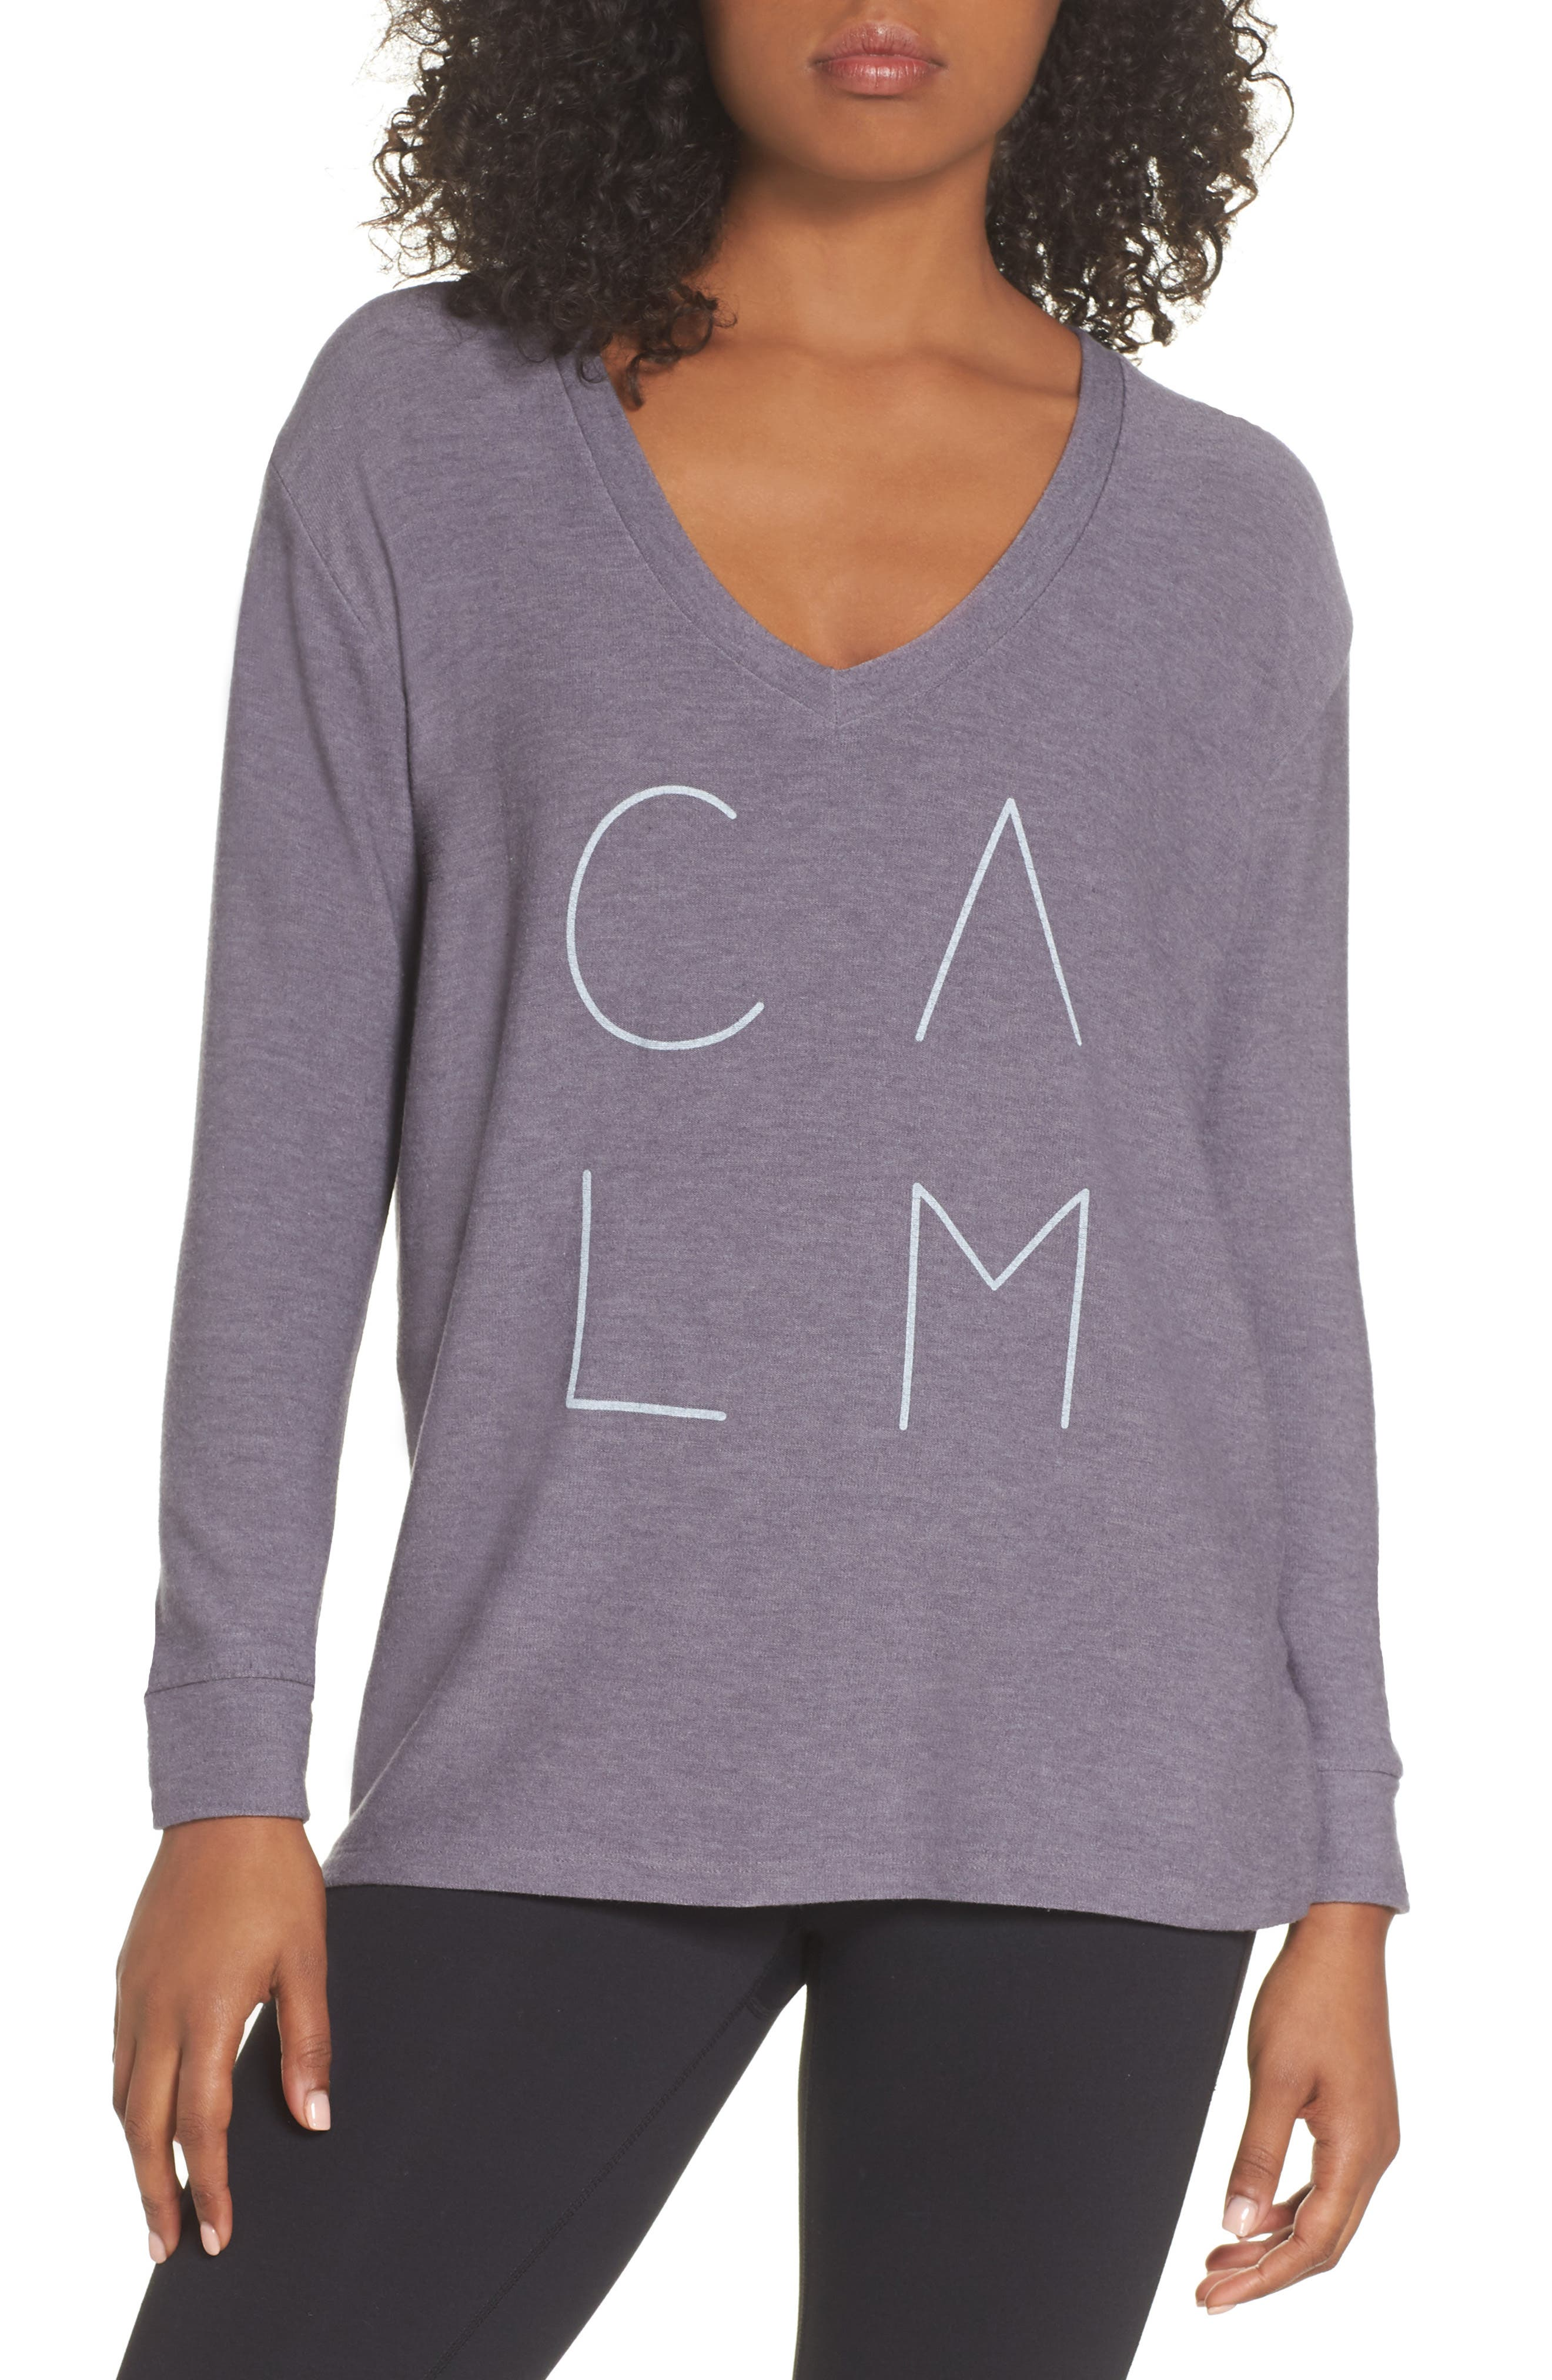 Robin Calm Sweater,                             Main thumbnail 1, color,                             CHARCOAL